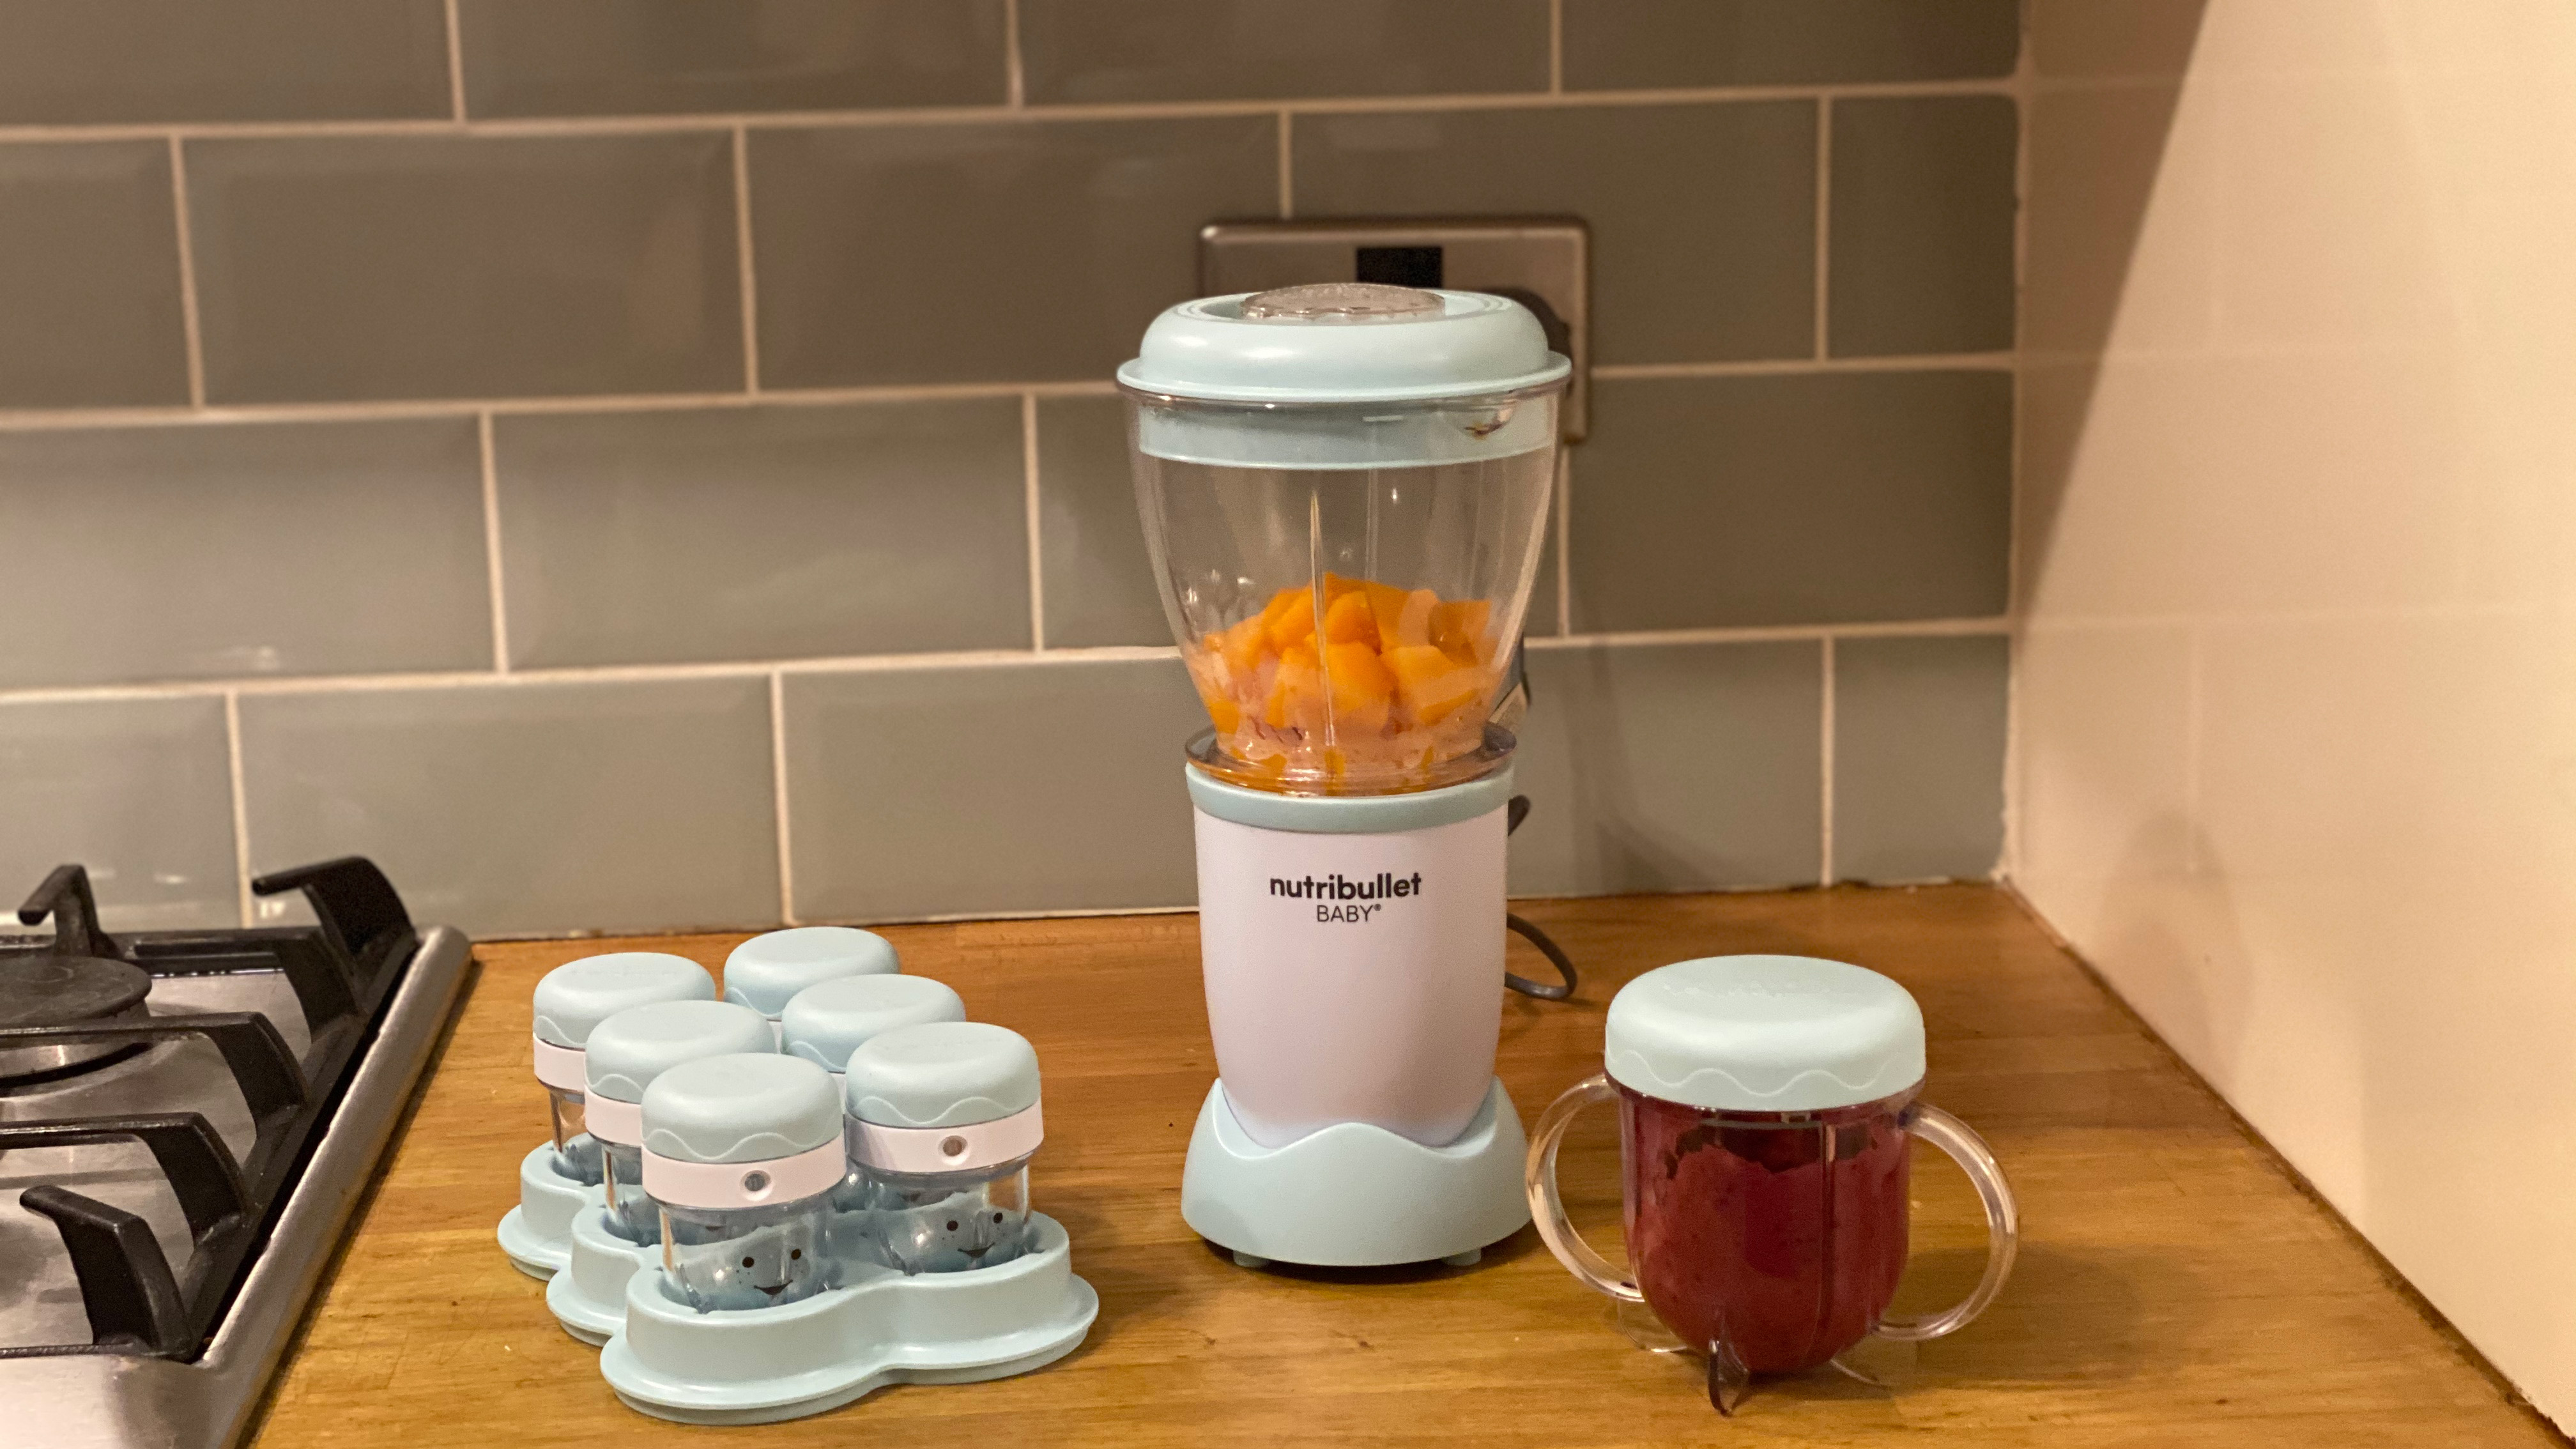 Nutribullet Baby on a kitchen countertop with extra storage pots